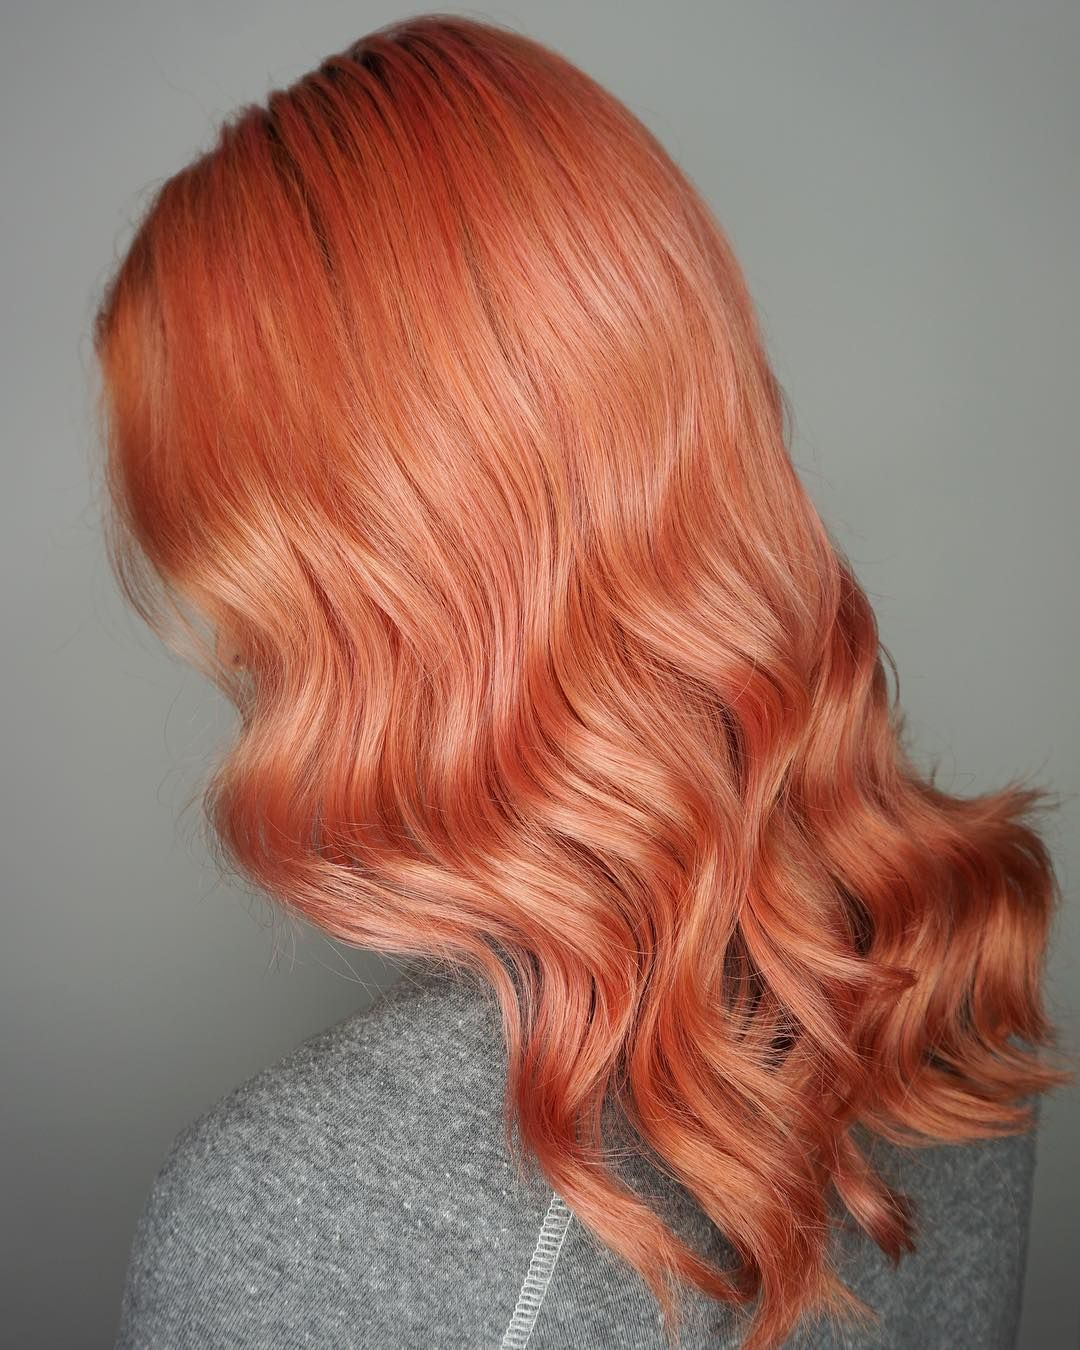 Goodbye Orange Hello Pink This Was A Pastel Pink Overlay On Her Faded Orange Toner Obsessed More Photos To Com Rose Gold Hair Dye Rose Gold Hair Dyed Hair